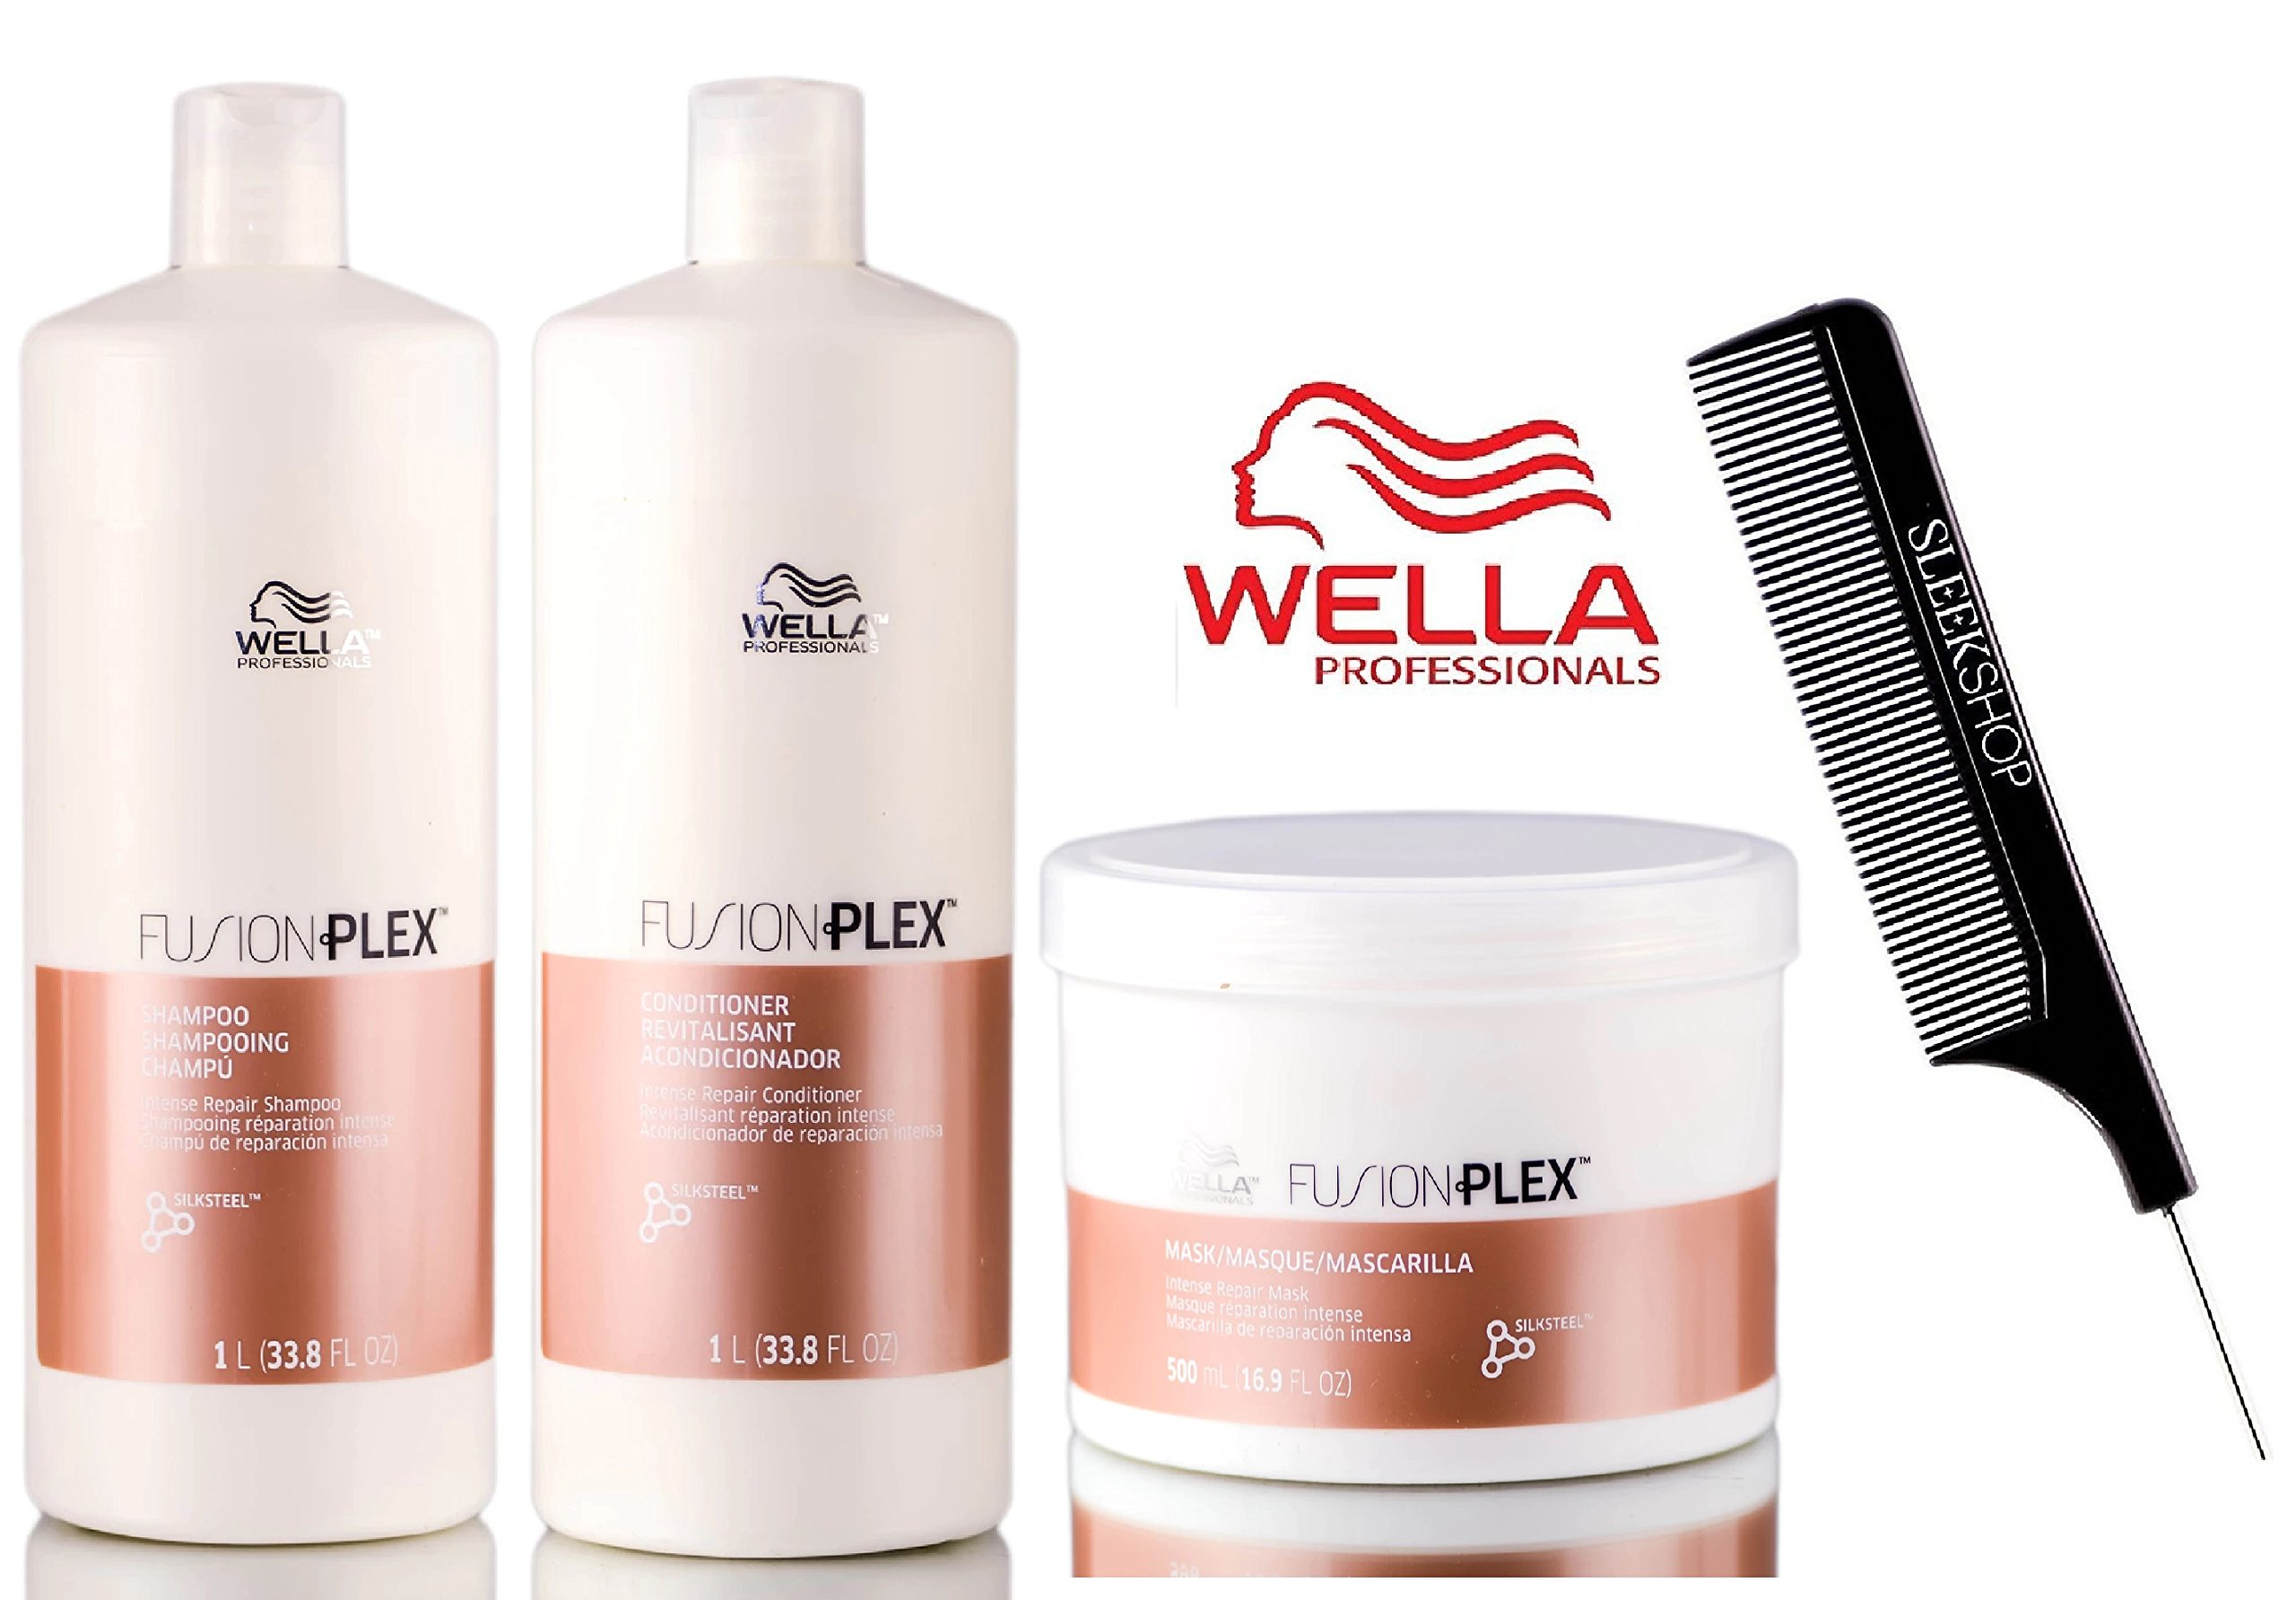 Wella FUSION PLEX Intense Repair Shampoo, Conditioner & Mask TRIO SET (with Sleek Steel Pin Tail Comb) (33.8 oz + 16.9 oz - LARGE TRIO Kit) by FusionPlex by Wella (Image #1)